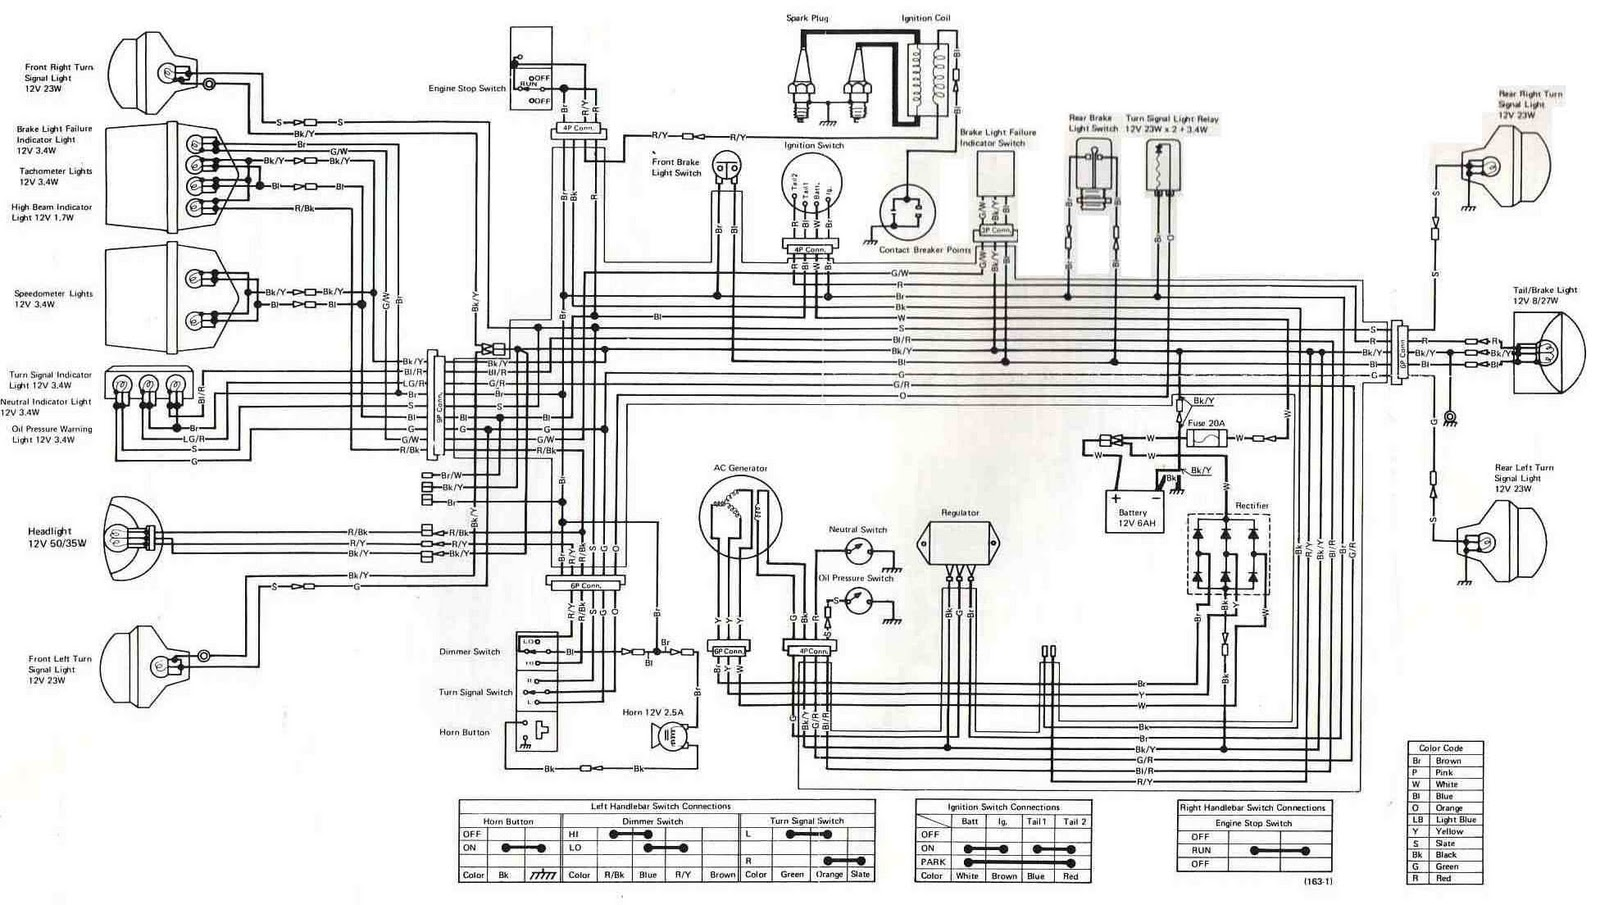 Kawasaki KZ400 1975 Electrical Wiring Diagram | All about ...